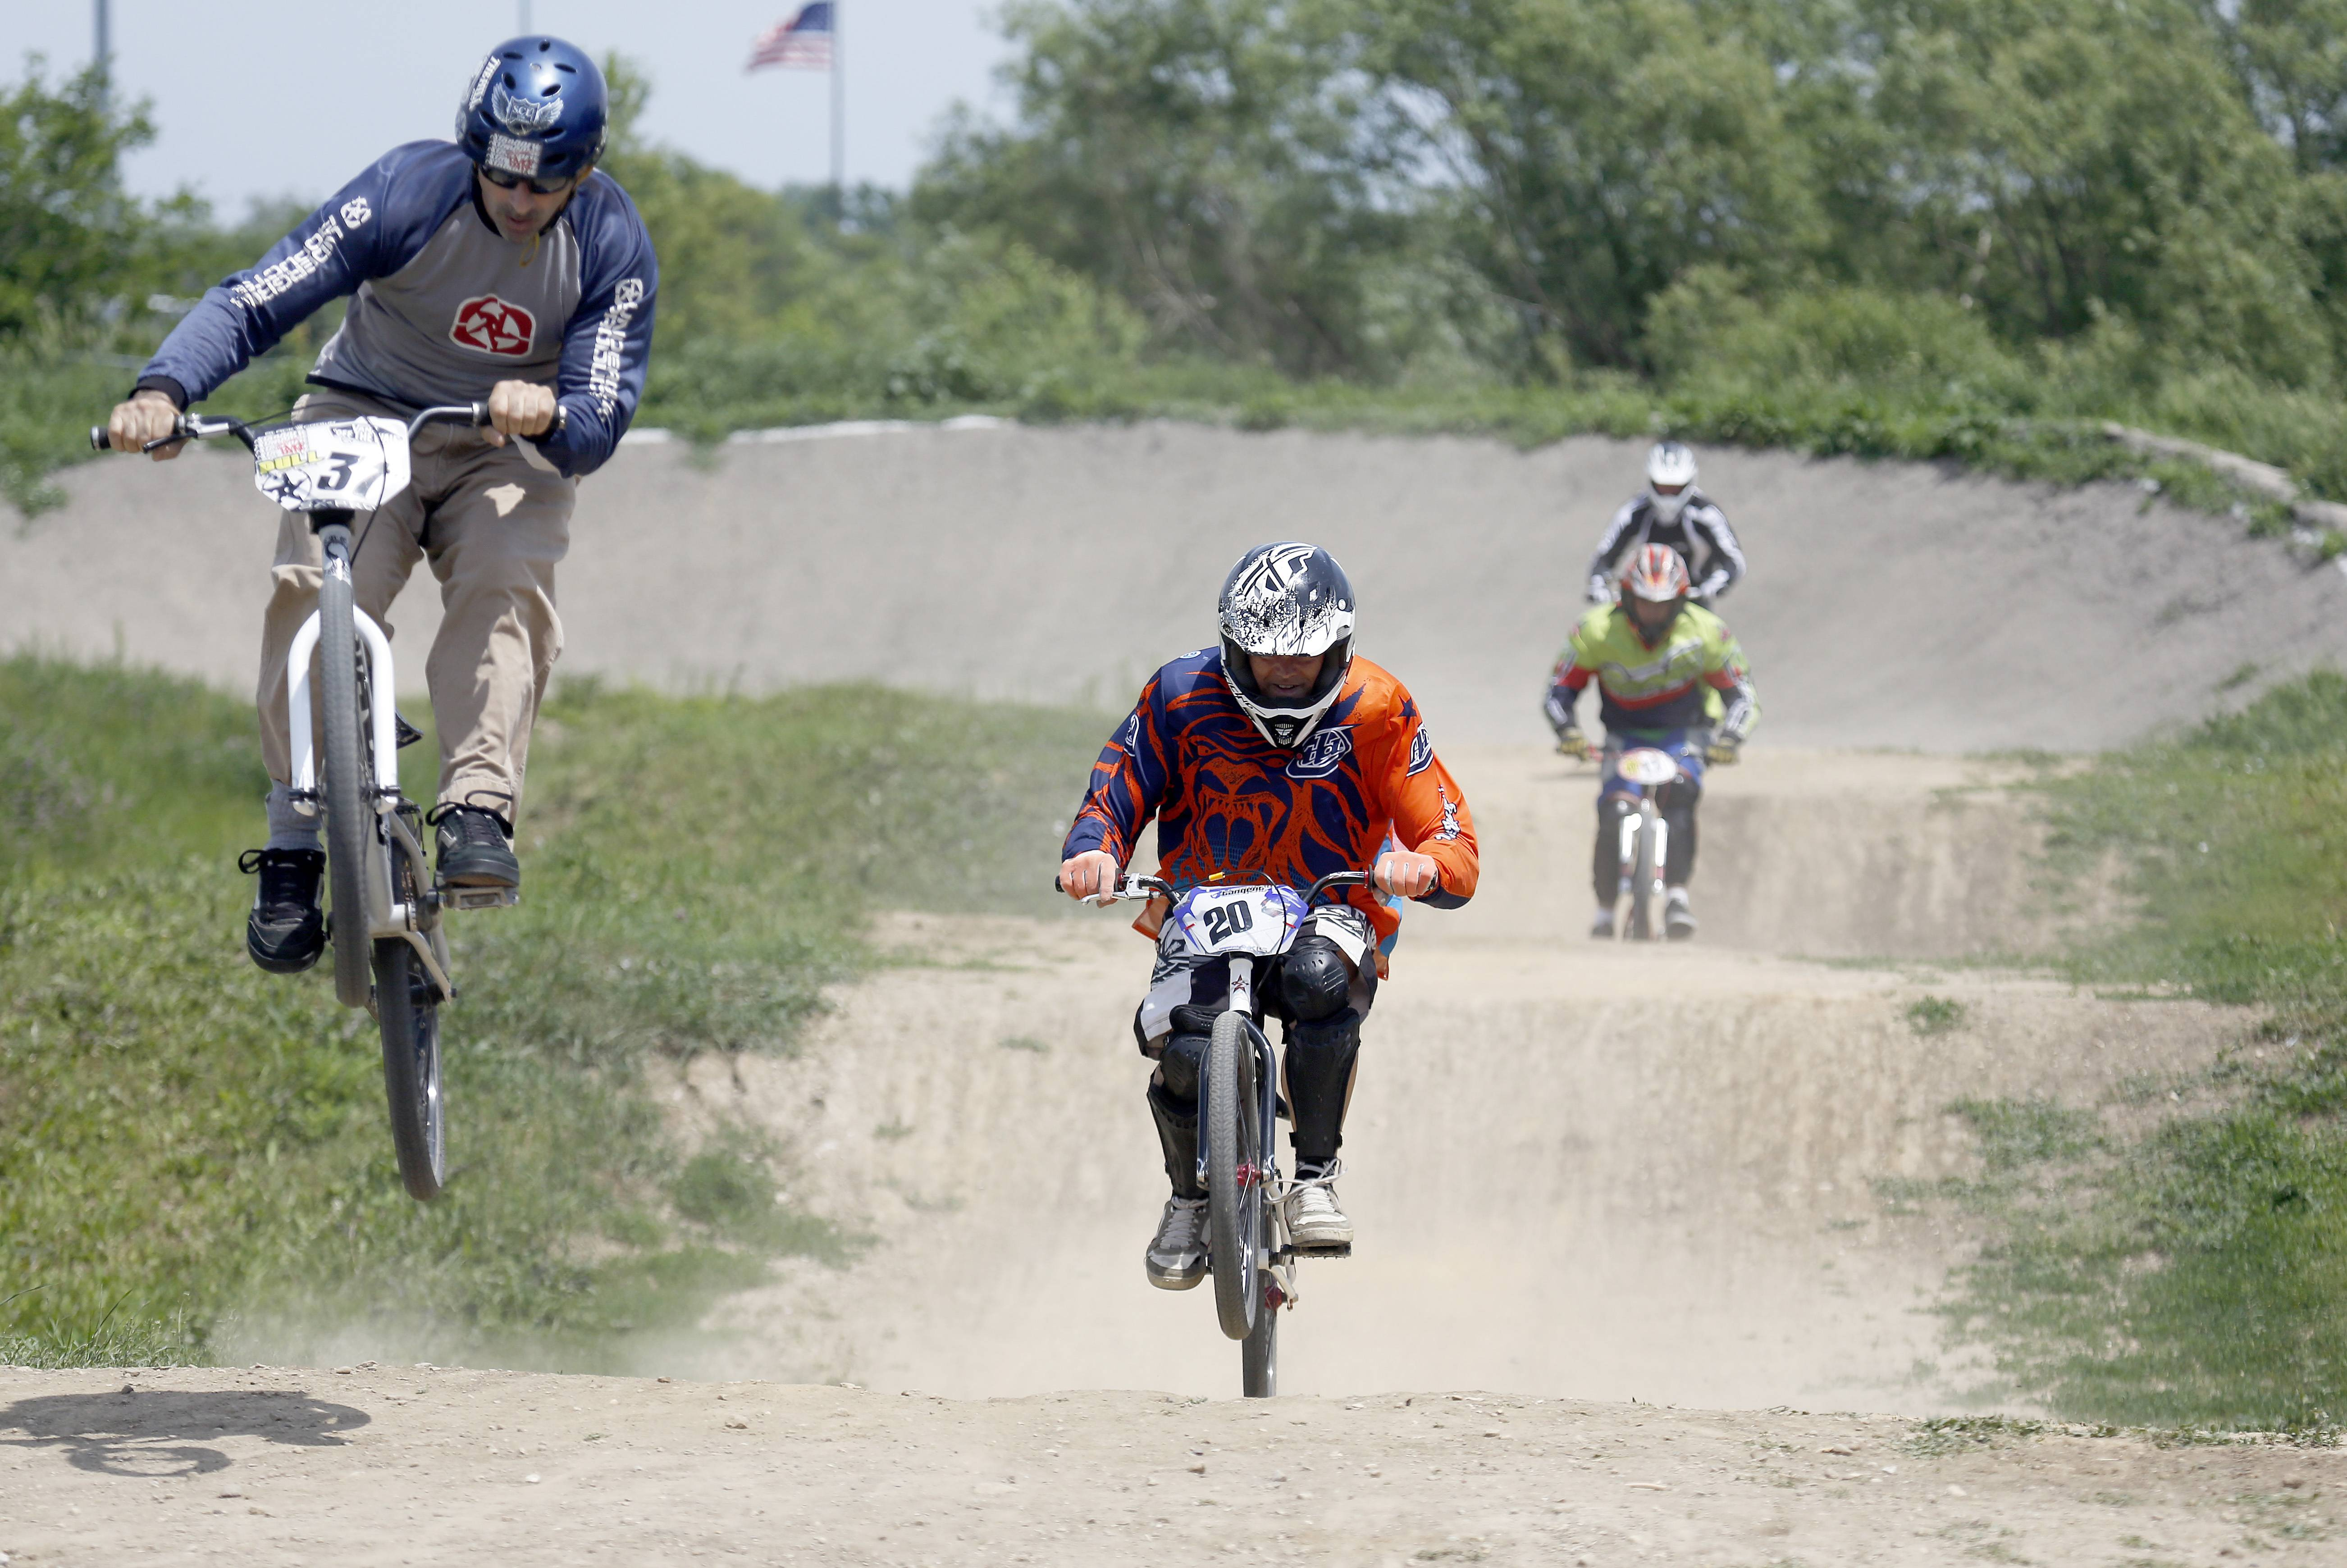 Elgin's BMX track closed abruptly after its operators had their sanctioning agreement revoked by the national governing body.